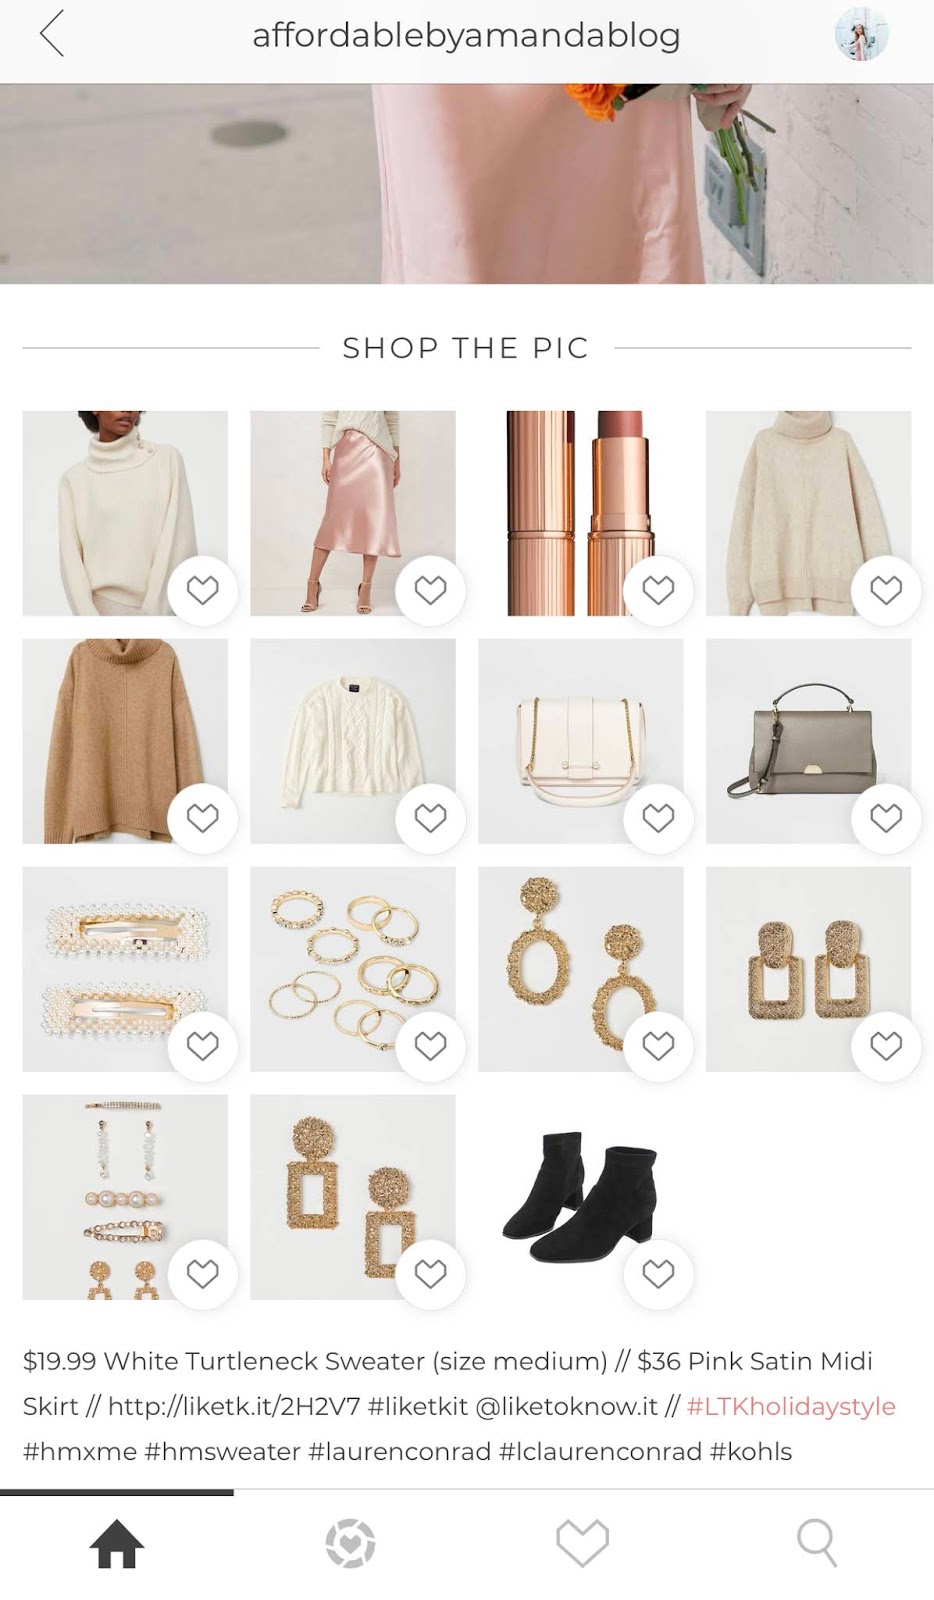 How to Make Your First $100 on LIKEtoKNOW.it as an Influencer | Affordable by Amanda on liketoknow.it app username is affordablebyamandablog sharing a $19.99 white turtleneck sweater and $36 satin pink midi skirt from kohl's